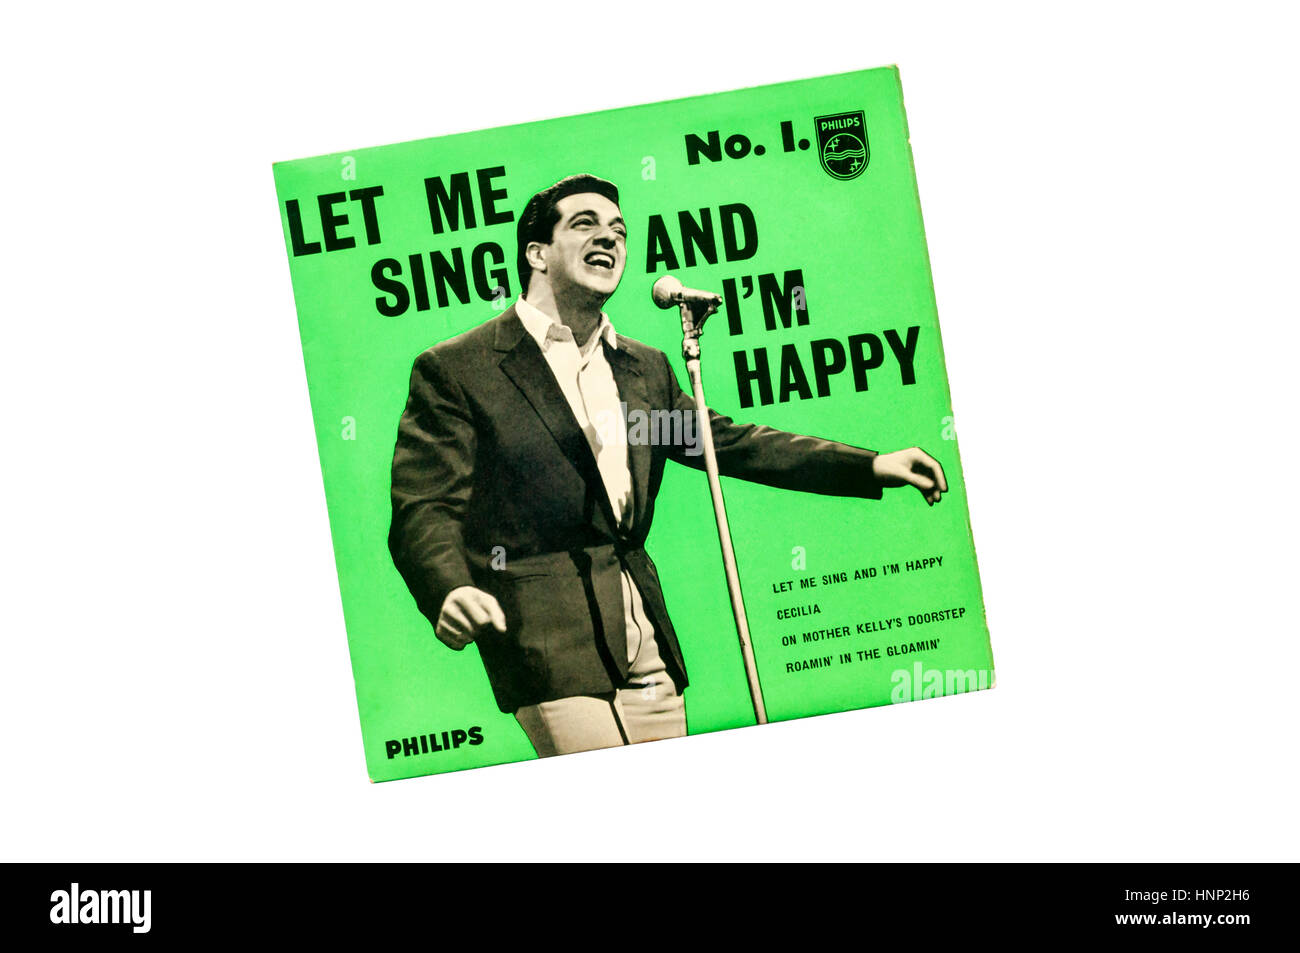 1961 EP Let Me Sing and I'm Happy No 1 by Frankie Vaughan. - Stock Image